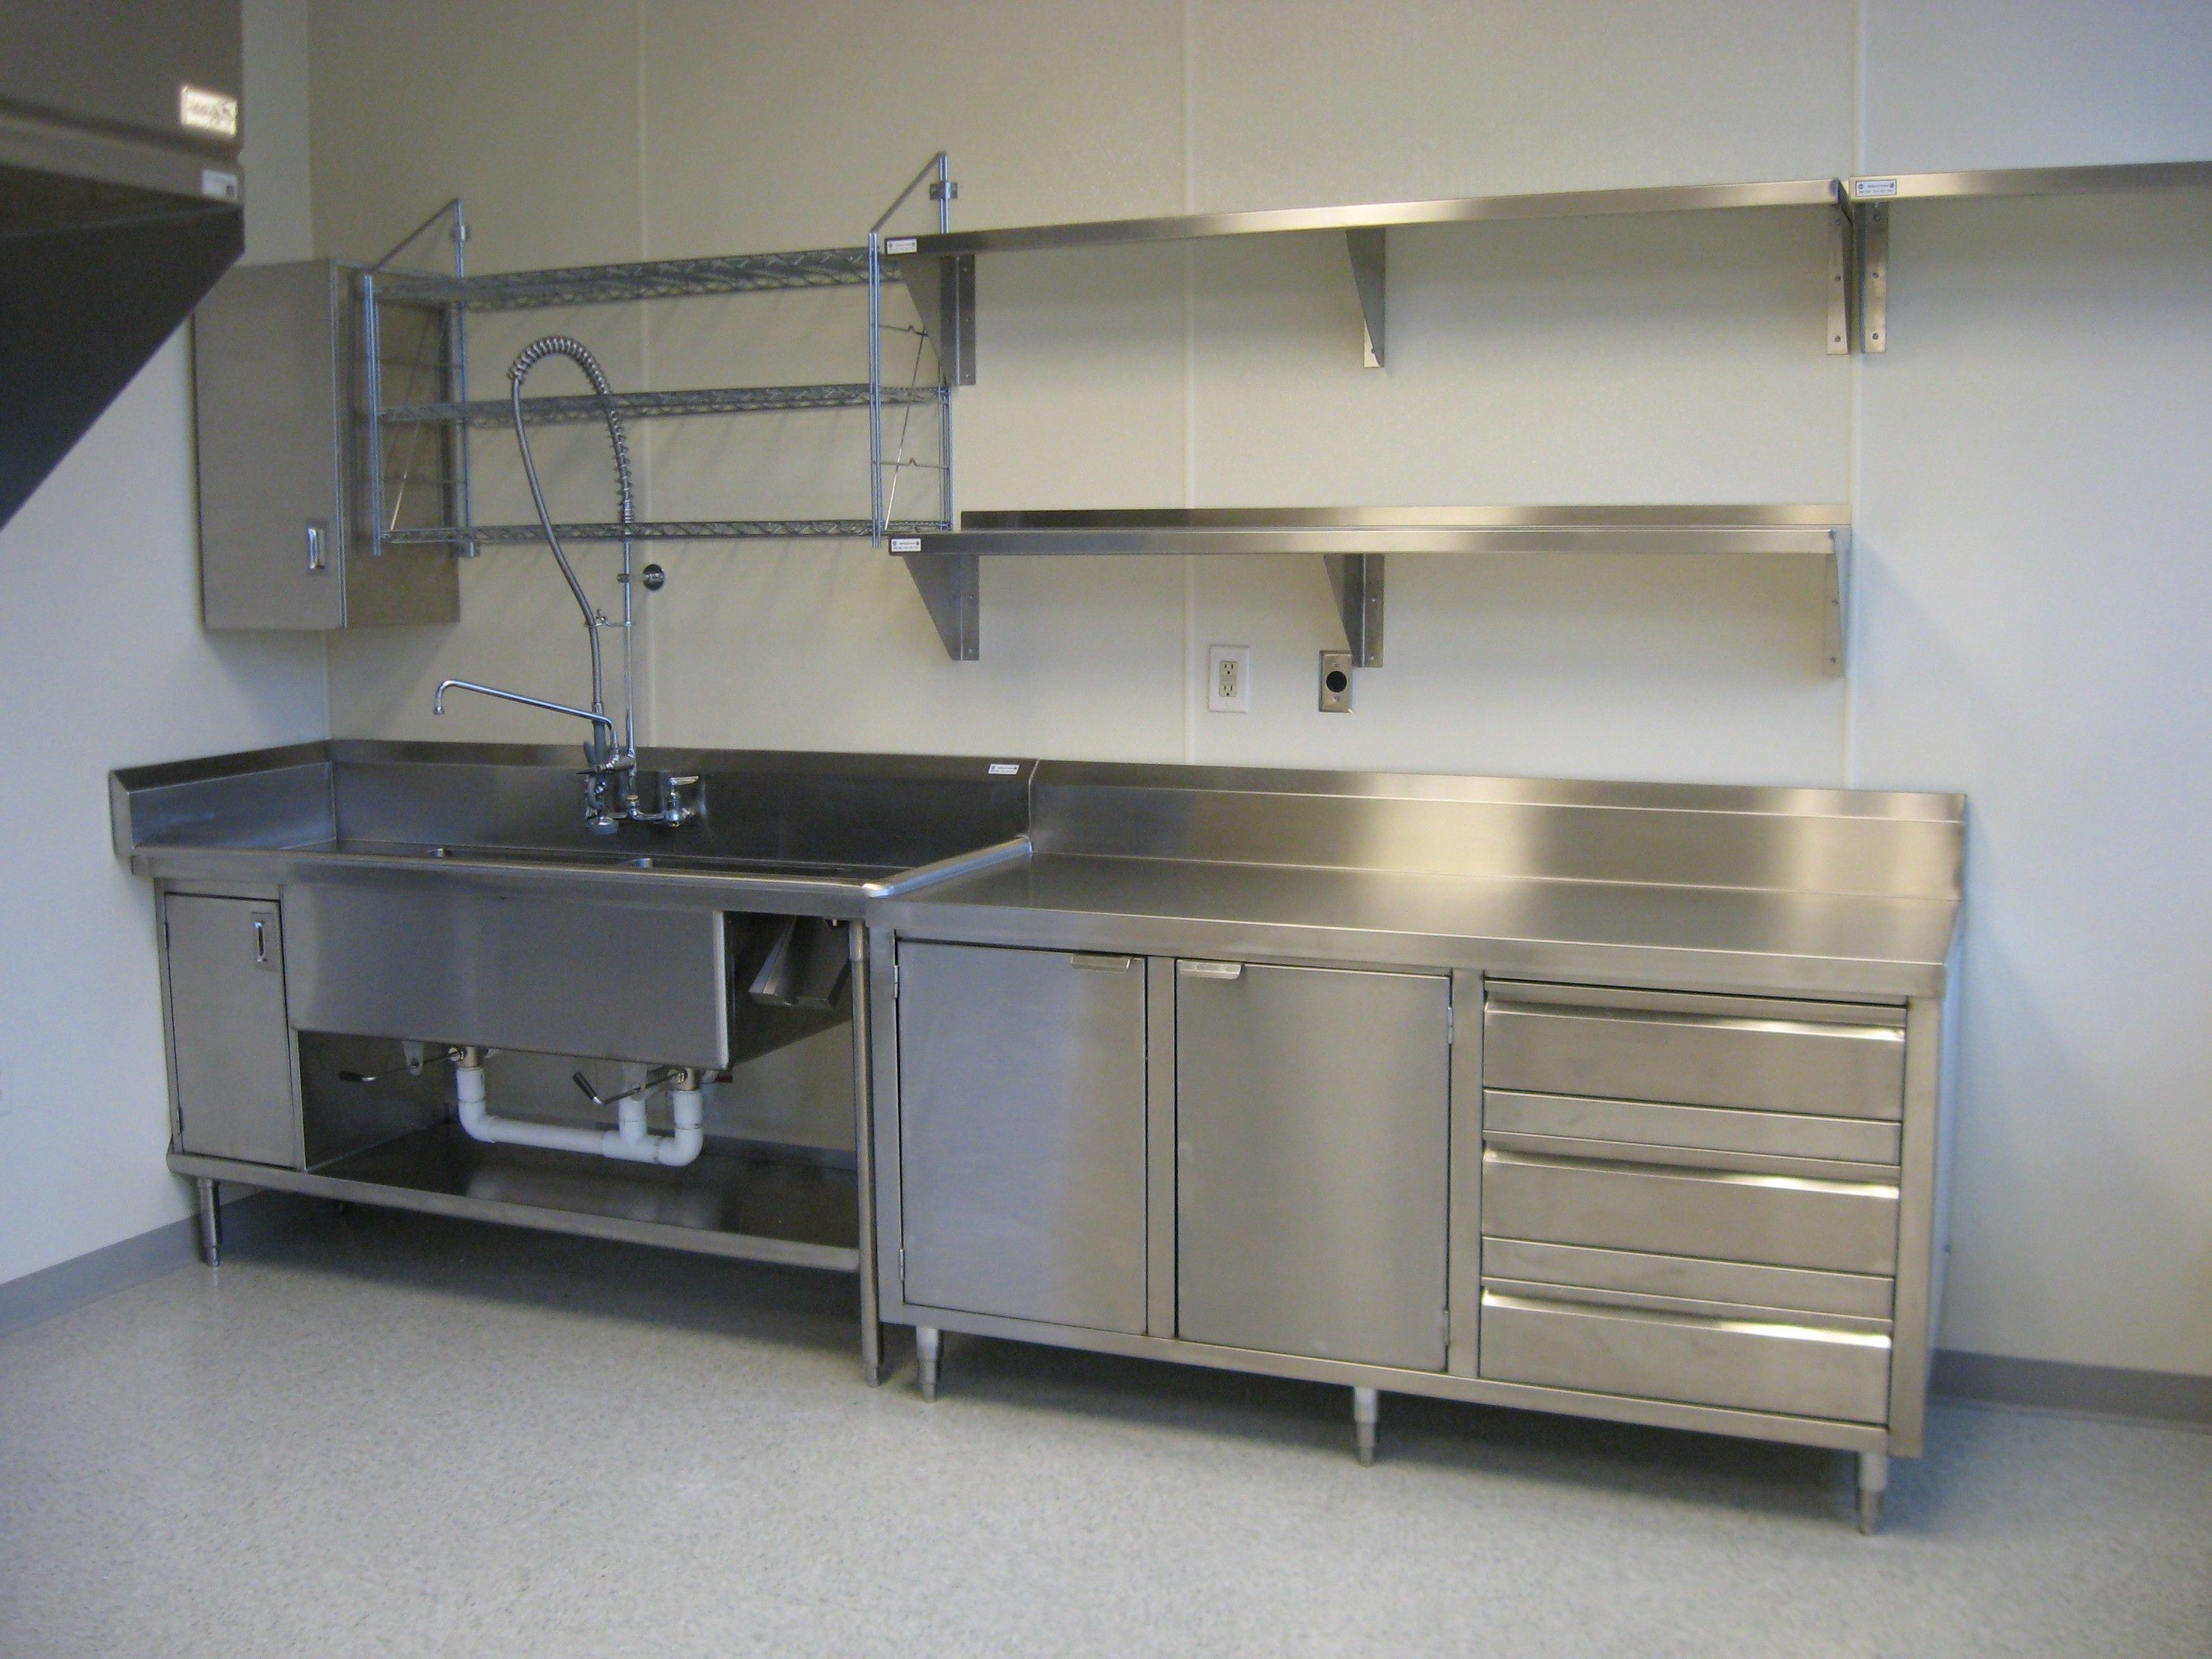 Stainless Steel Restaurant Kitchen Cabinets. Best Kitchen Gallery Shelving Stainless Steel Fitted Units Mercial Kitchen Large Of Stainless Steel Restaurant